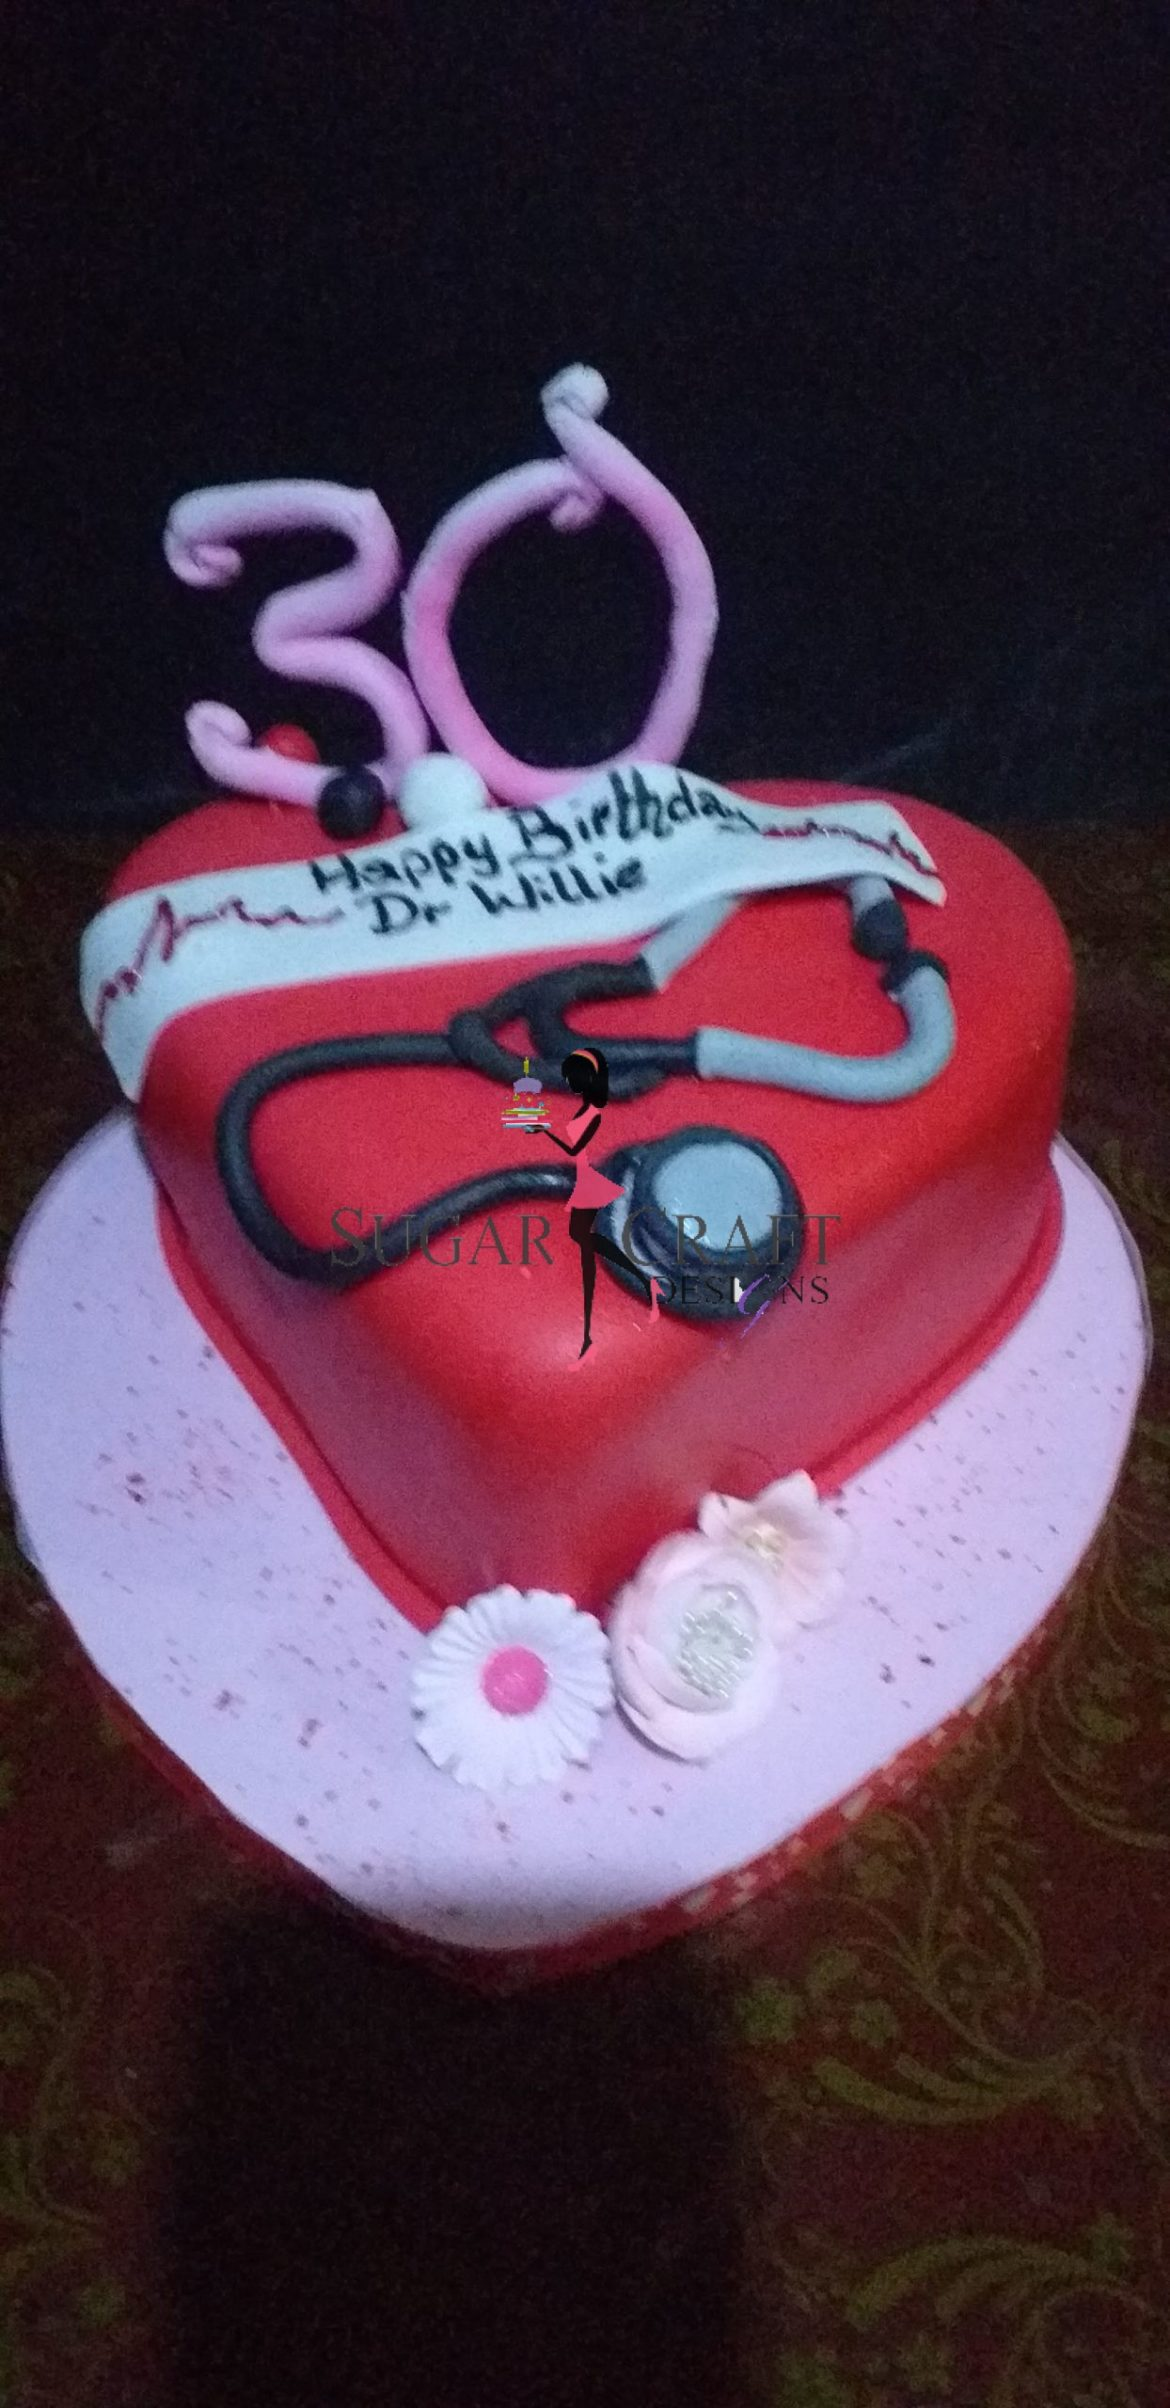 30th-Dr-heart-cake-scaled.jpg